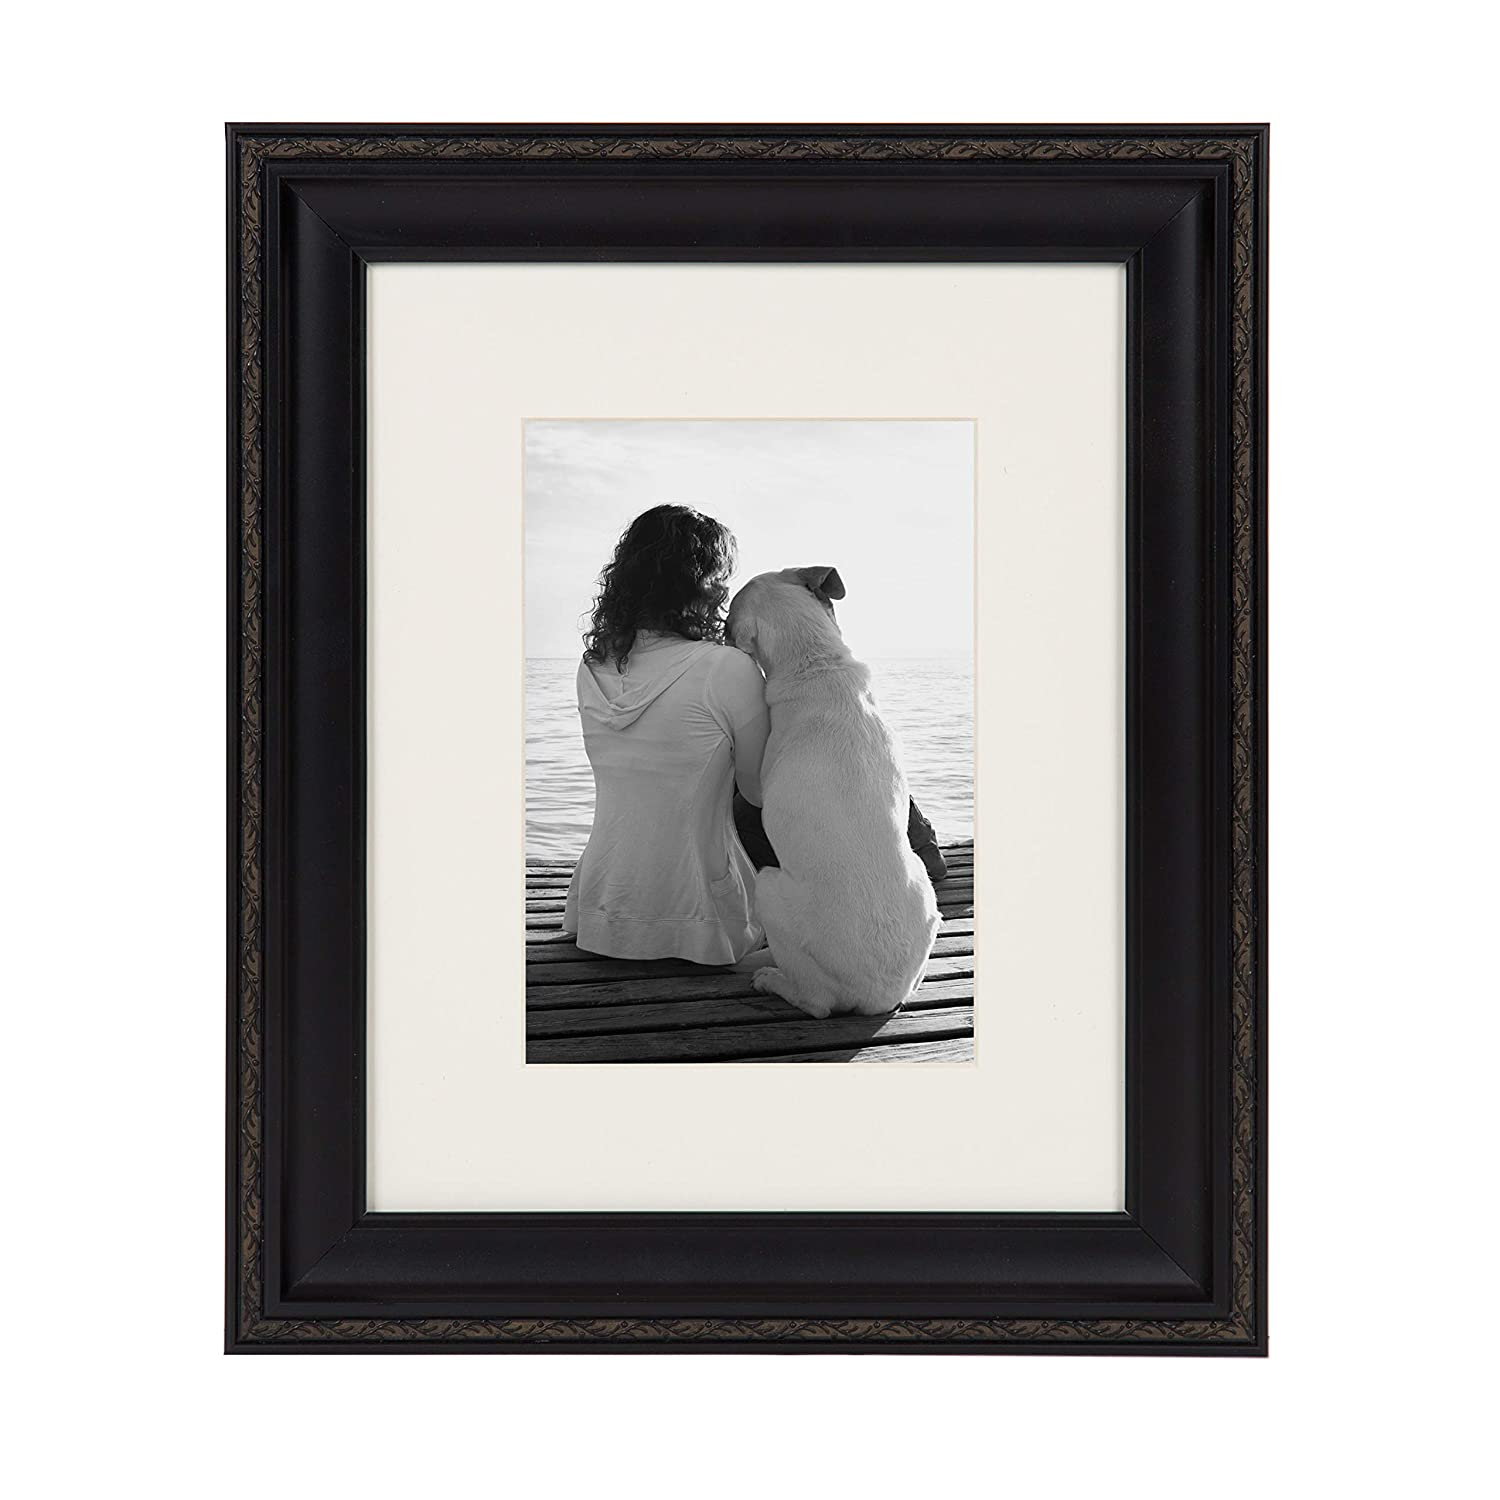 DesignOvation Martinez Wall Hanging or Table Standing Decorative Picture Frame Set, Antique Black 8×10 matted to 5×7, Pack of 4